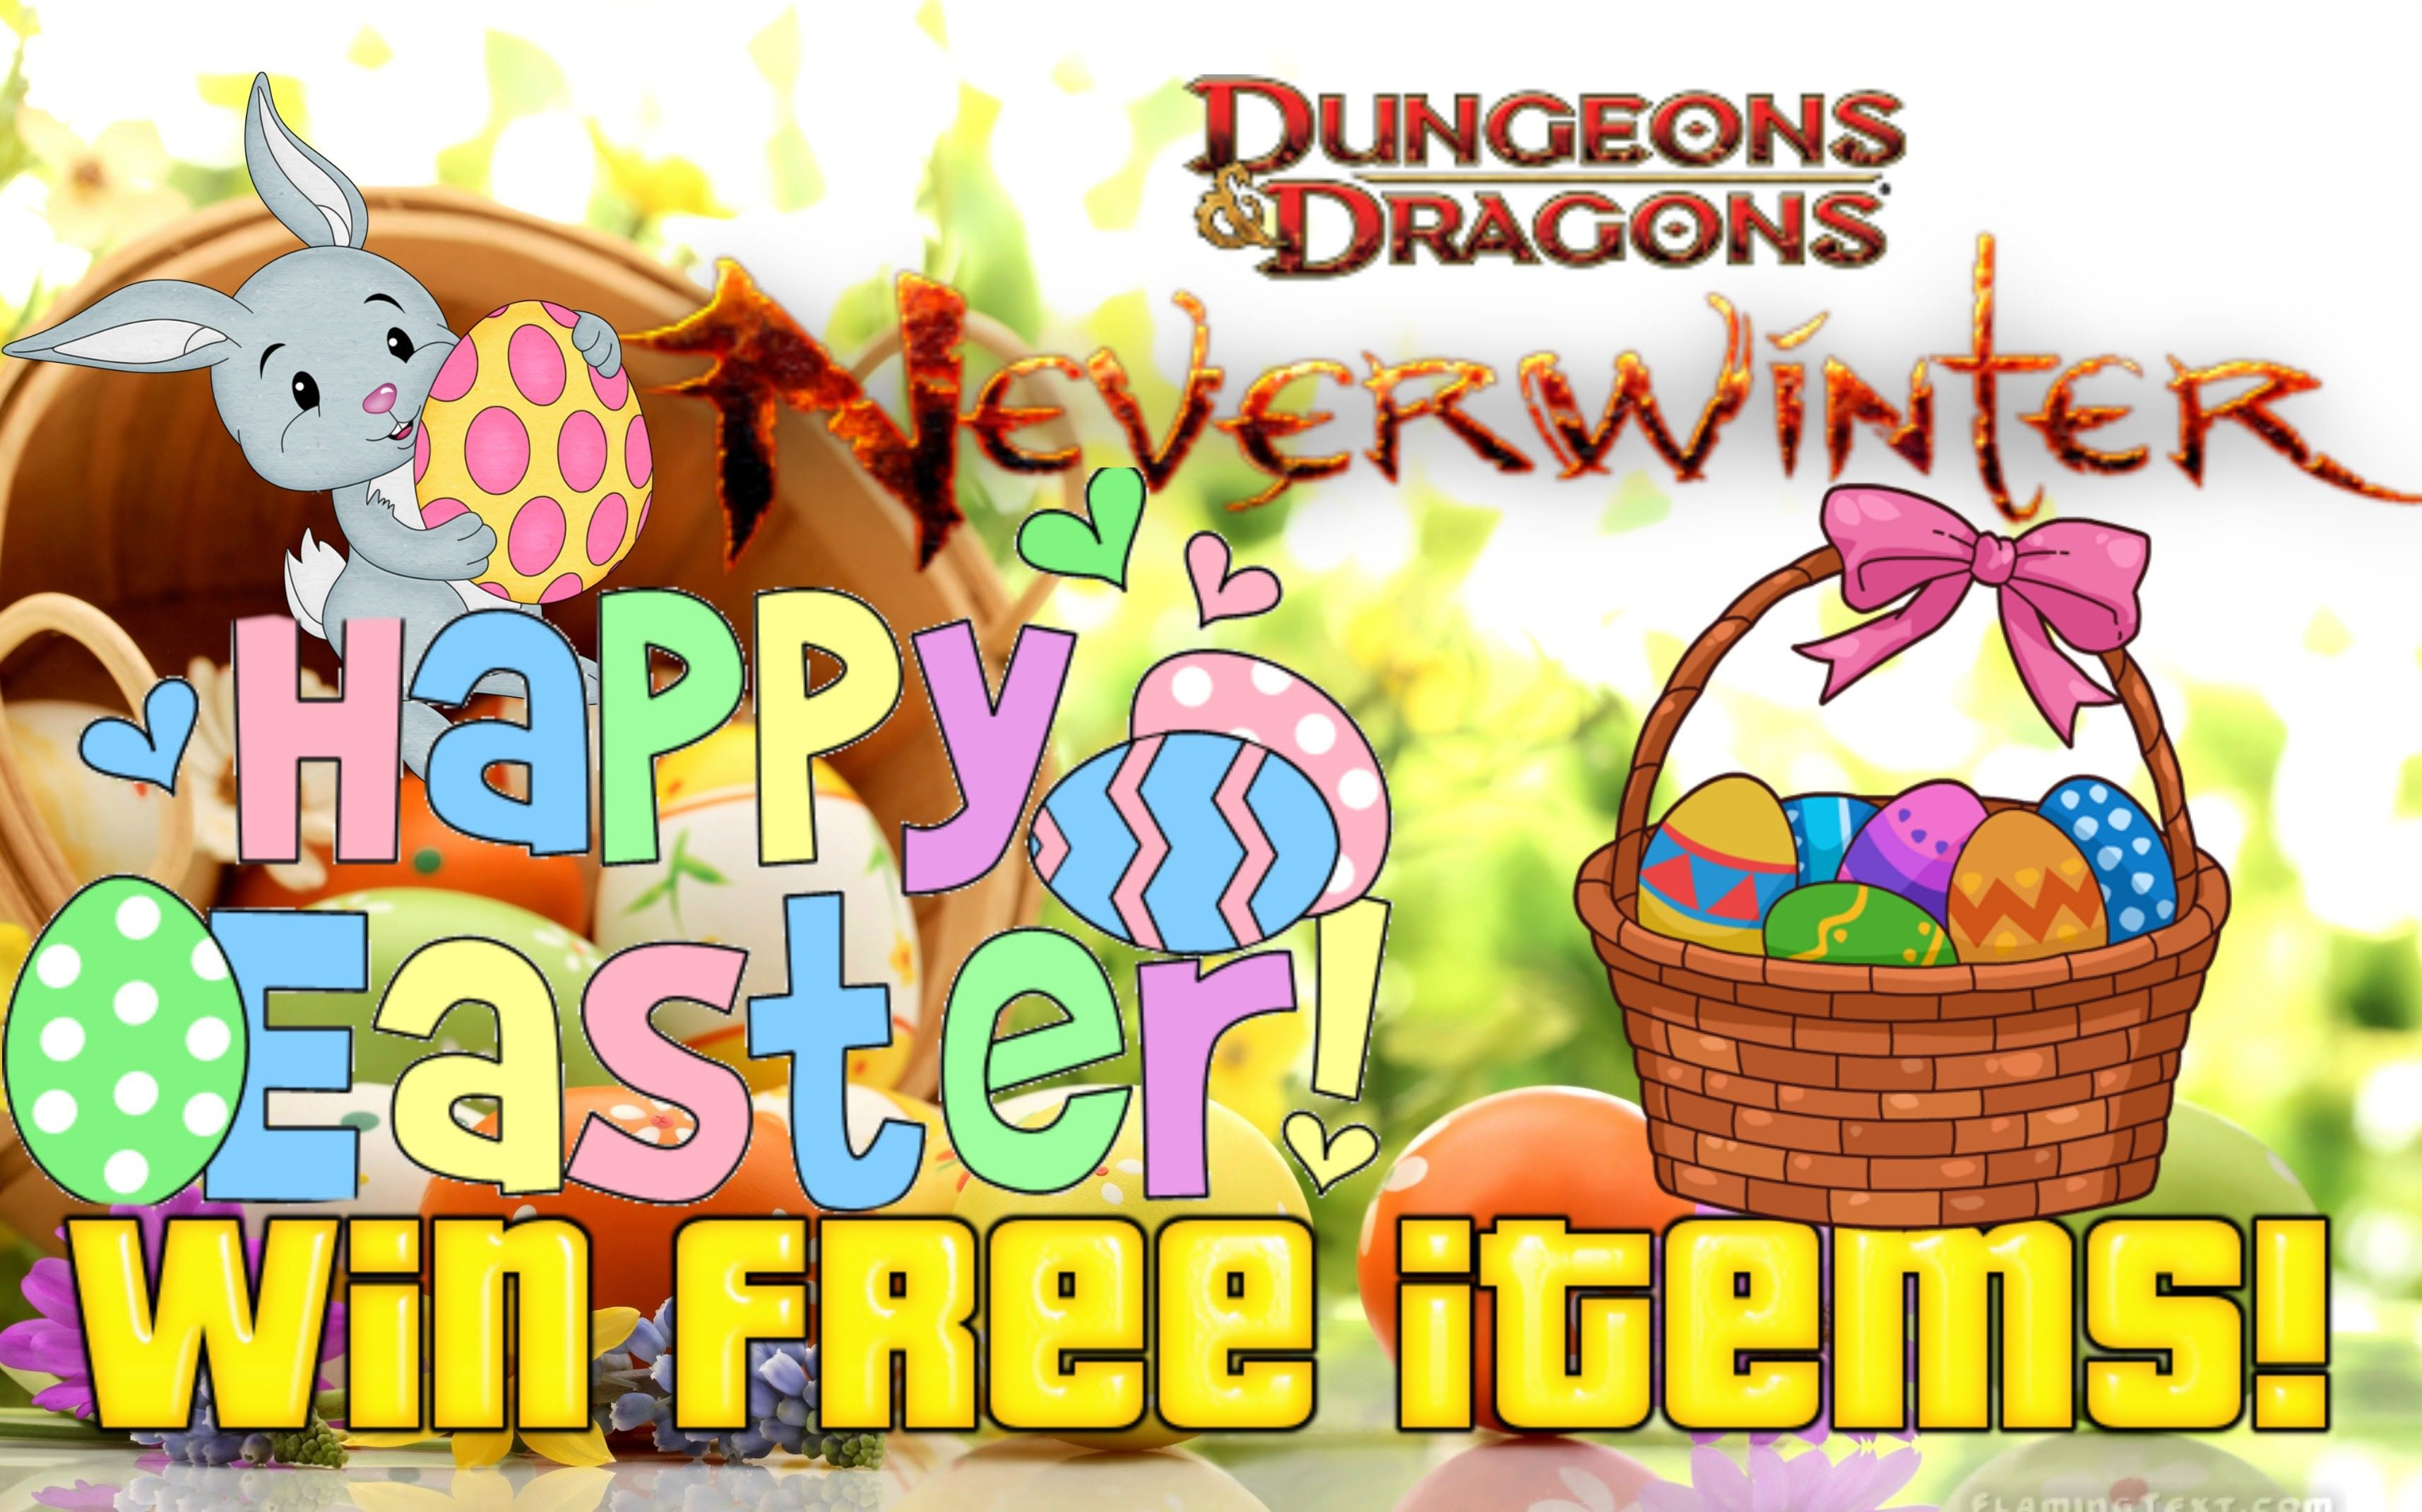 Neverwinter Easter Item Giveaway - Win free items! (XBOX ONE ONLY)